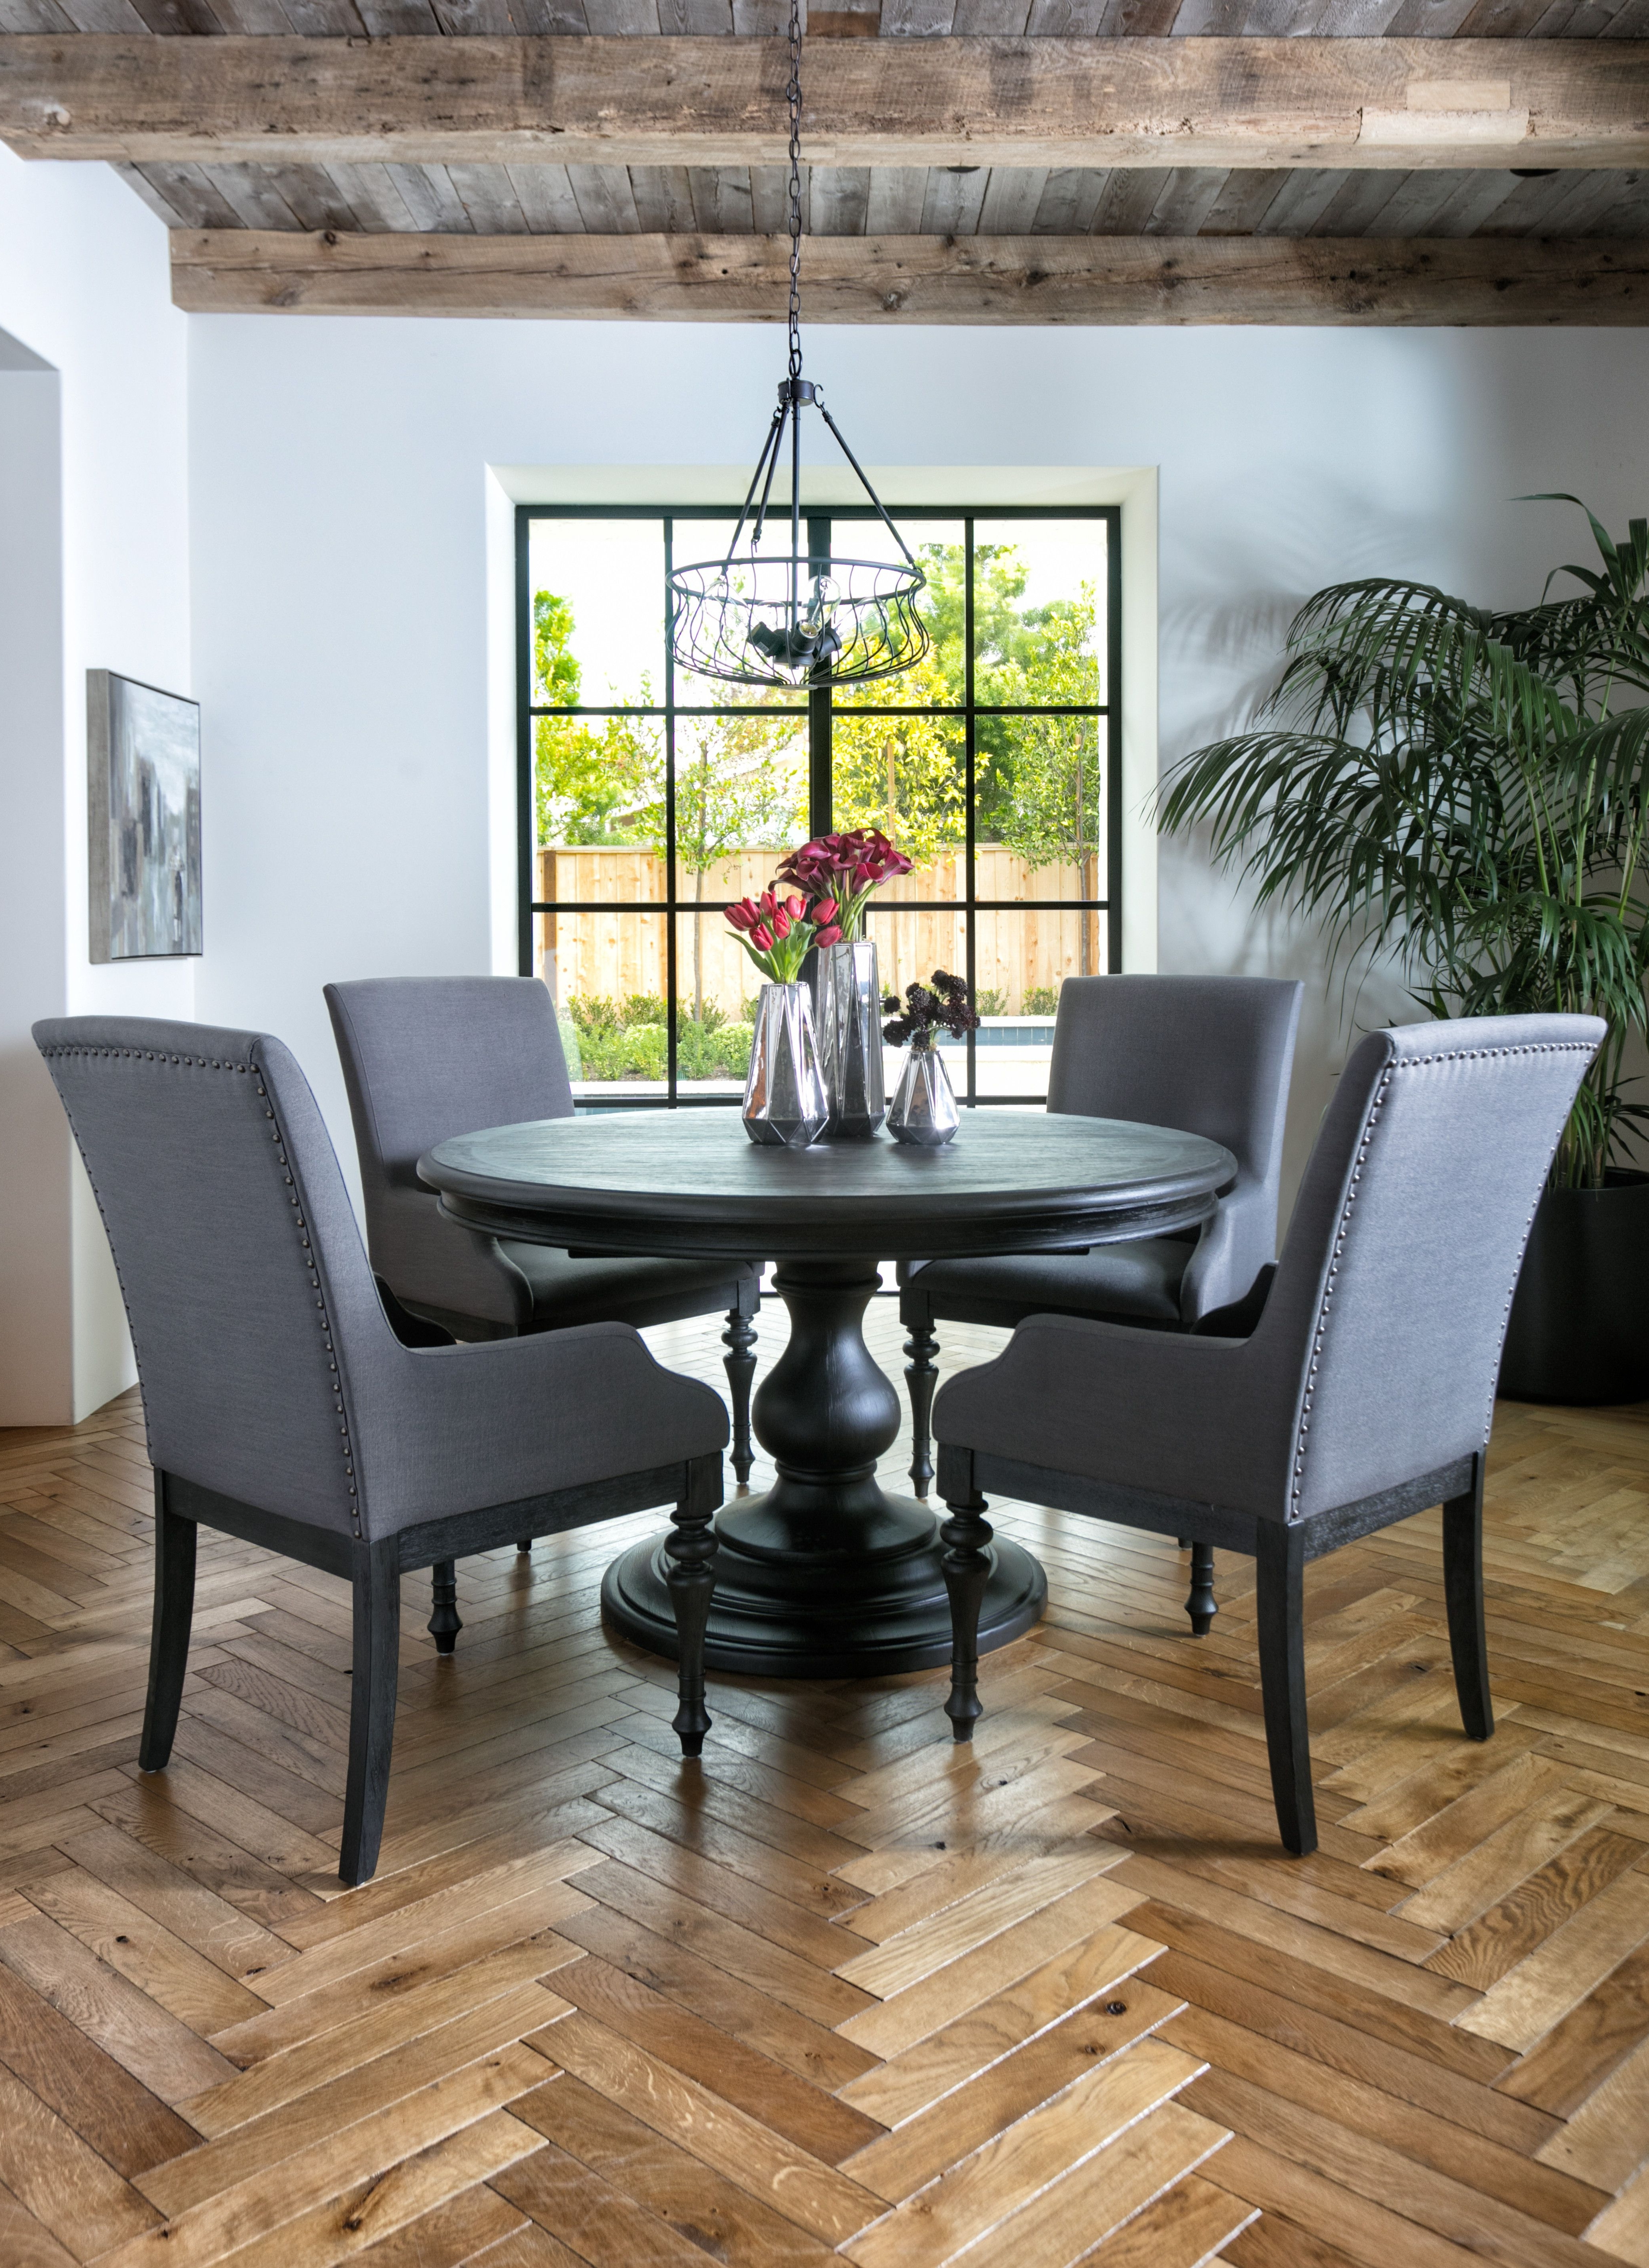 Caira Black 5 Piece Round Dining Set With Diamond Back Side Chairs Pertaining To Most Popular Caira Black Upholstered Arm Chairs (View 1 of 20)